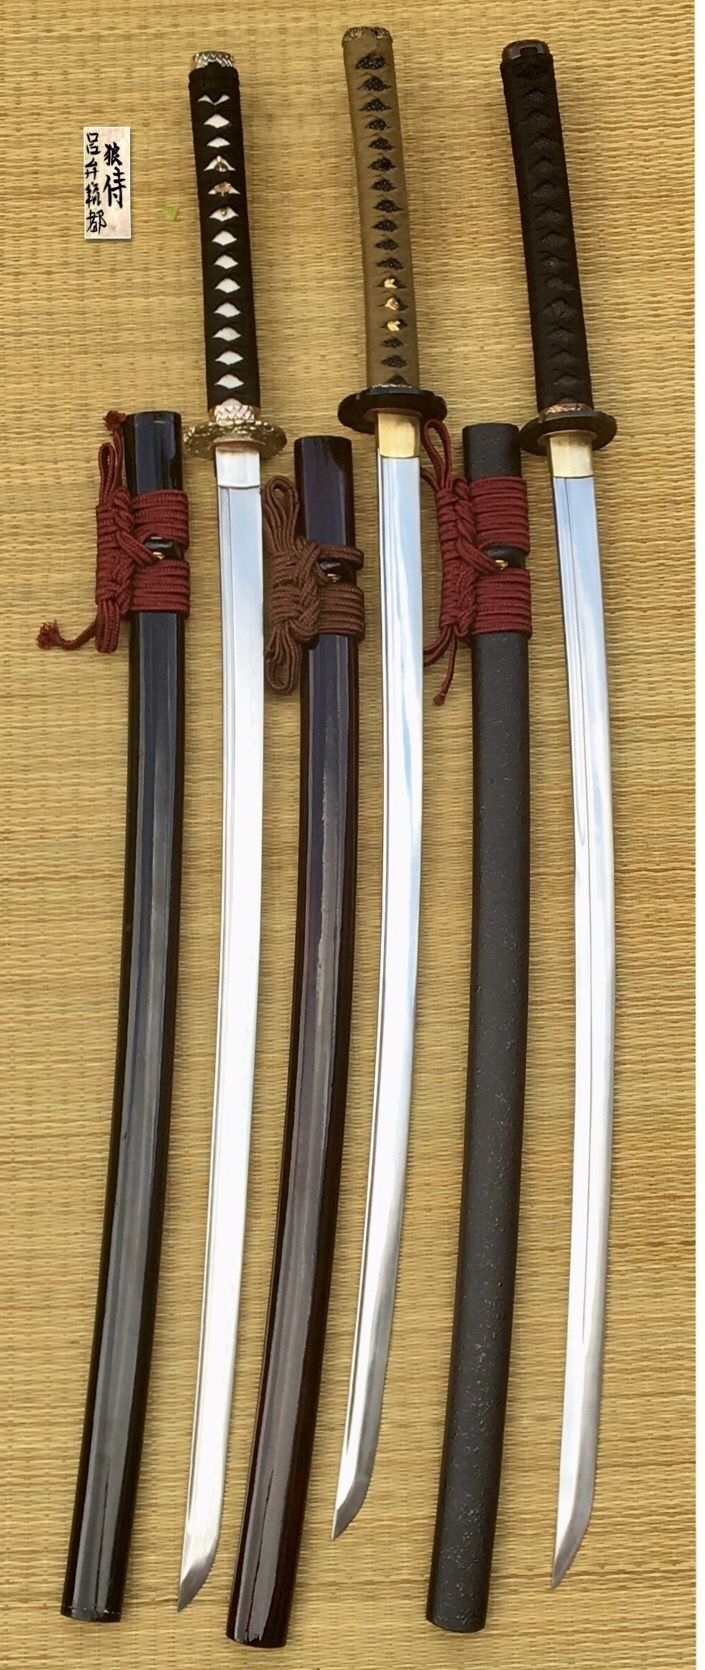 Hand made AISI 1060 steel. Clay tempered shinogui zukuri at left, Razor sharp shinogui zukuri at center and Tameshigiri Unokubi zukuri razor sharp at right. Custom by me. http://riflescopescenter.com/category/bushnell-riflescope-reviews/